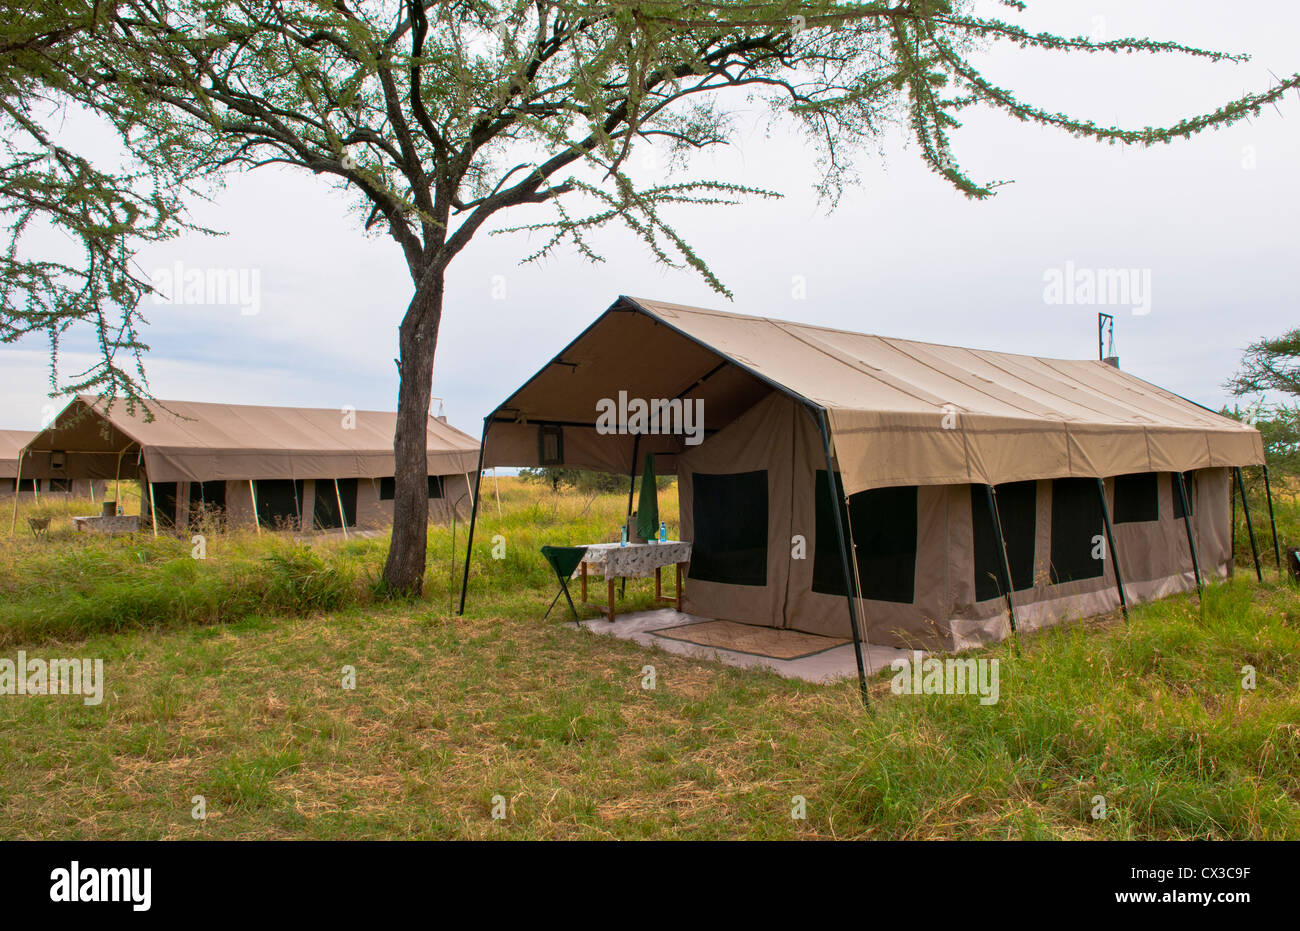 Tanzania Serengeti Africa lodge c& with tents called Kati Kati C& Serengeti National Park in safari & Tanzania Serengeti Africa lodge camp with tents called Kati Kati ...